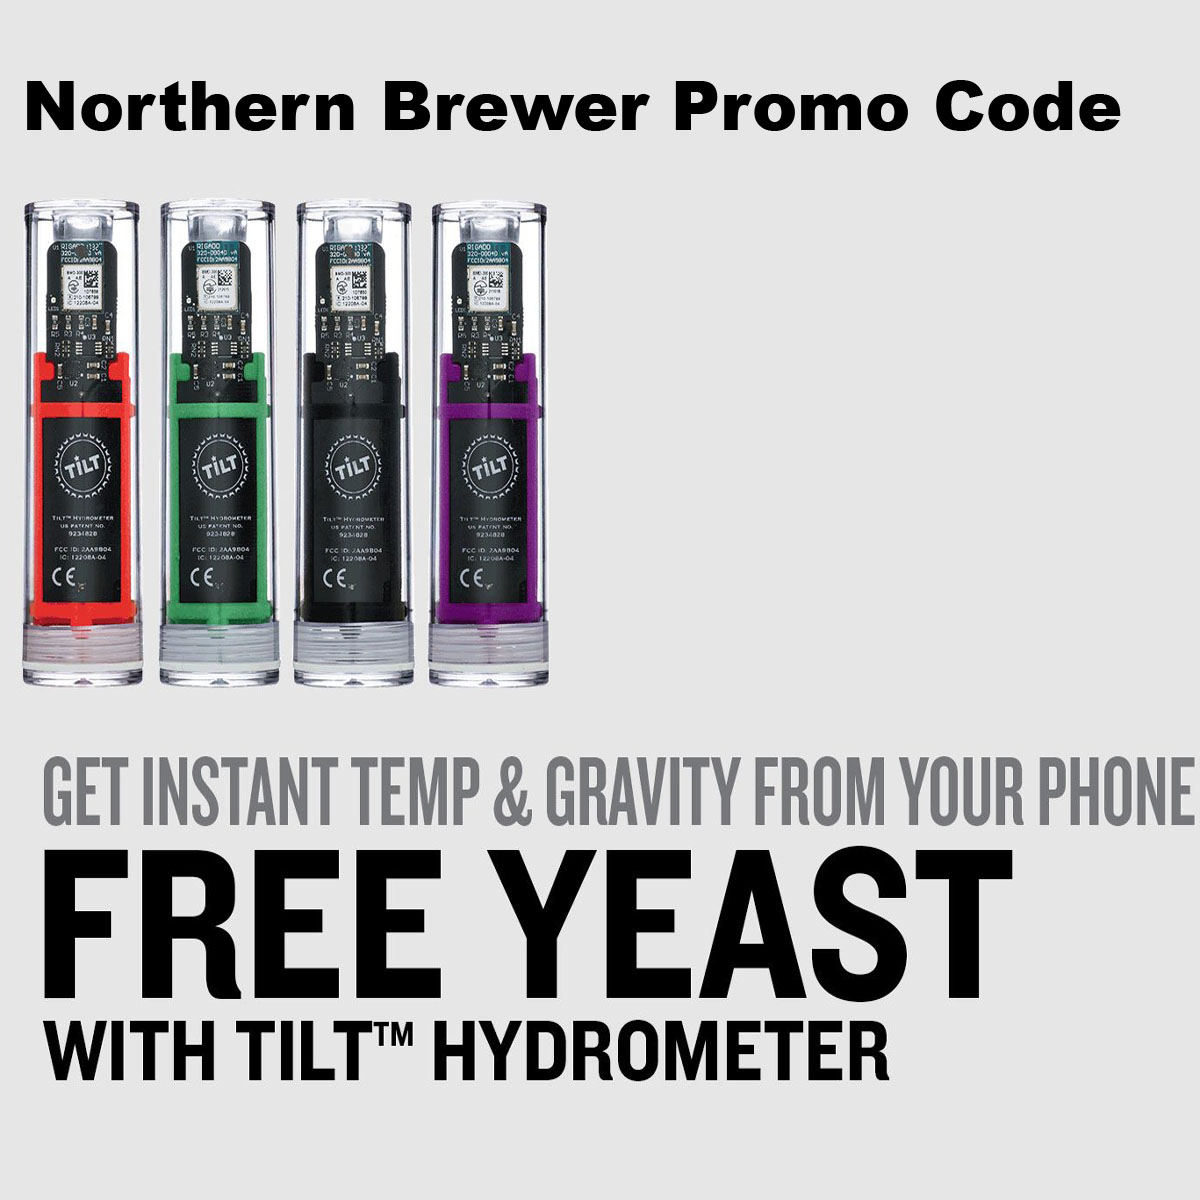 Home Wine Making Coupon Codes for Get a FREE Yeast Pack with the purchase of a Tilt digital Hydrometer NorthernBrewer.com Promo Code Coupon Code